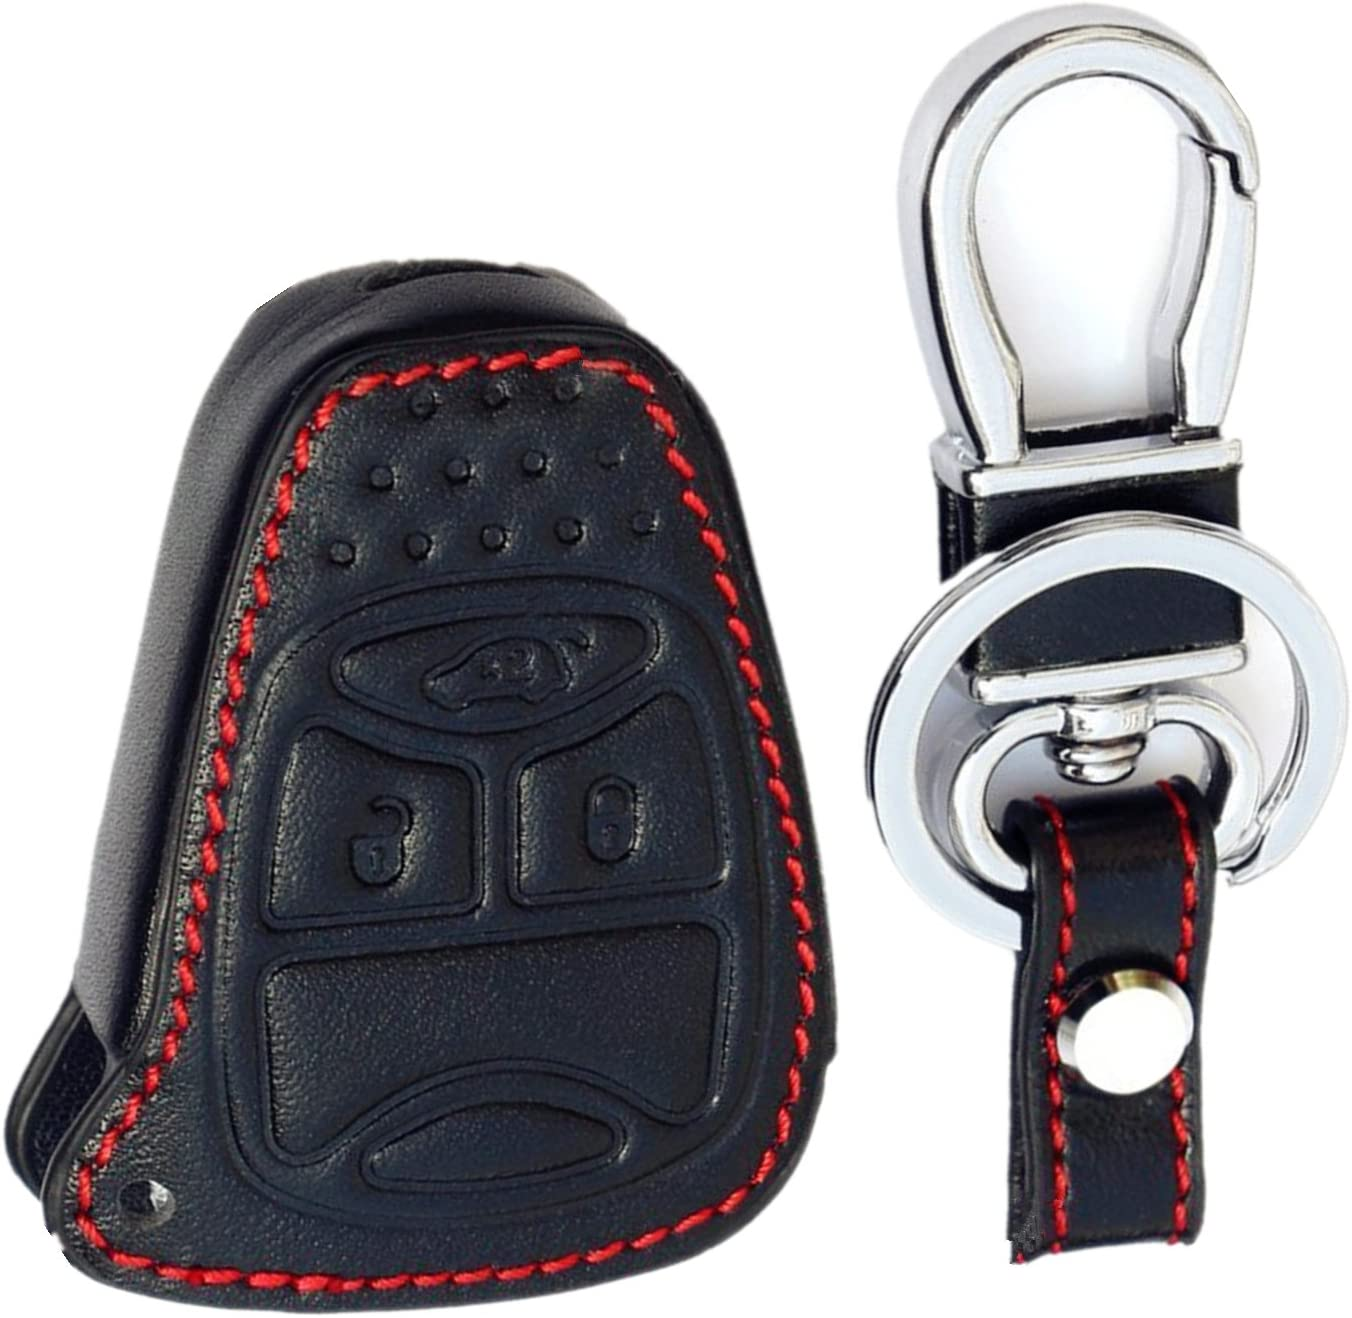 Key Fob Cover For 2006 2007 Jeep Commander Remote Case Rubber Skin Jacket